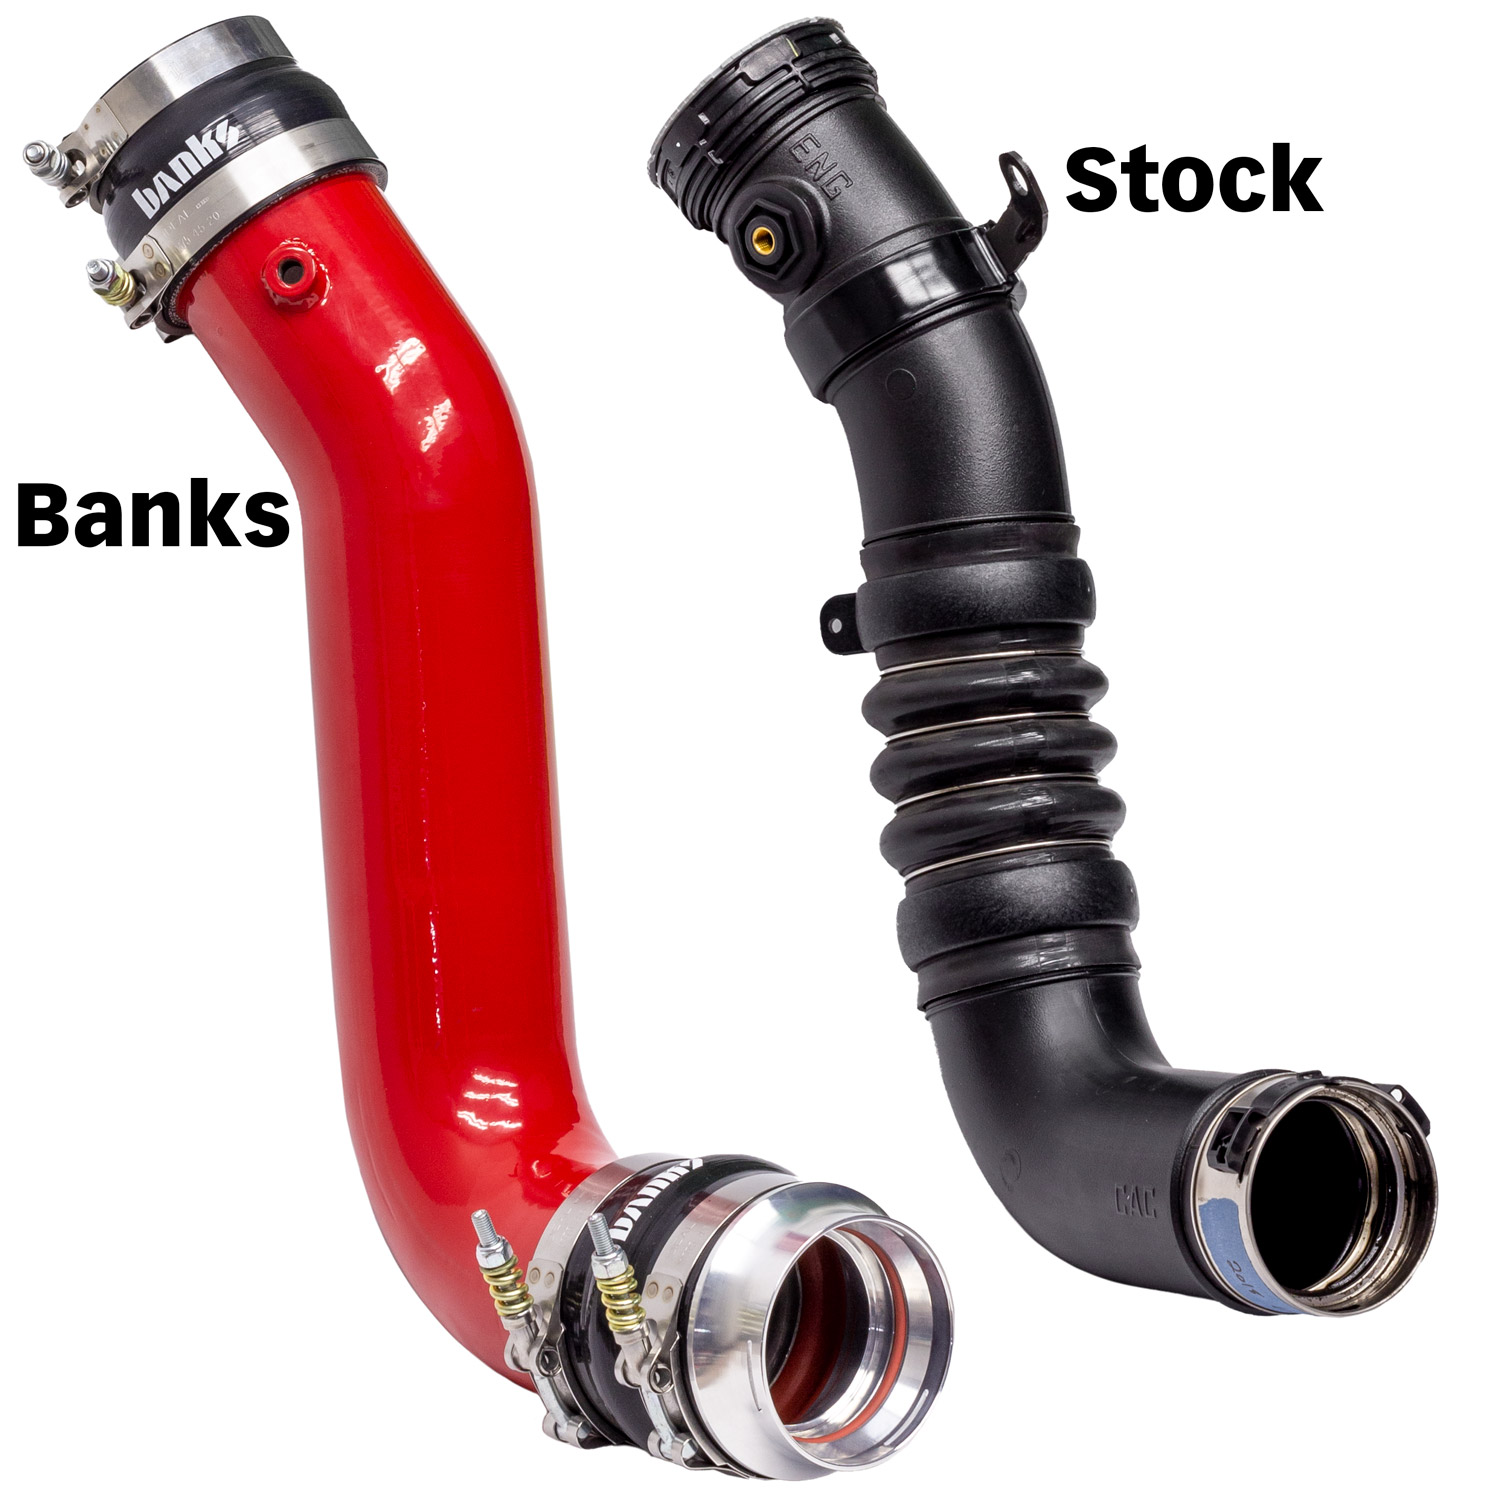 Banks Power, Boost Tubes, Intercooler Pipes, Charge Air Cooler, Banks vs Stock